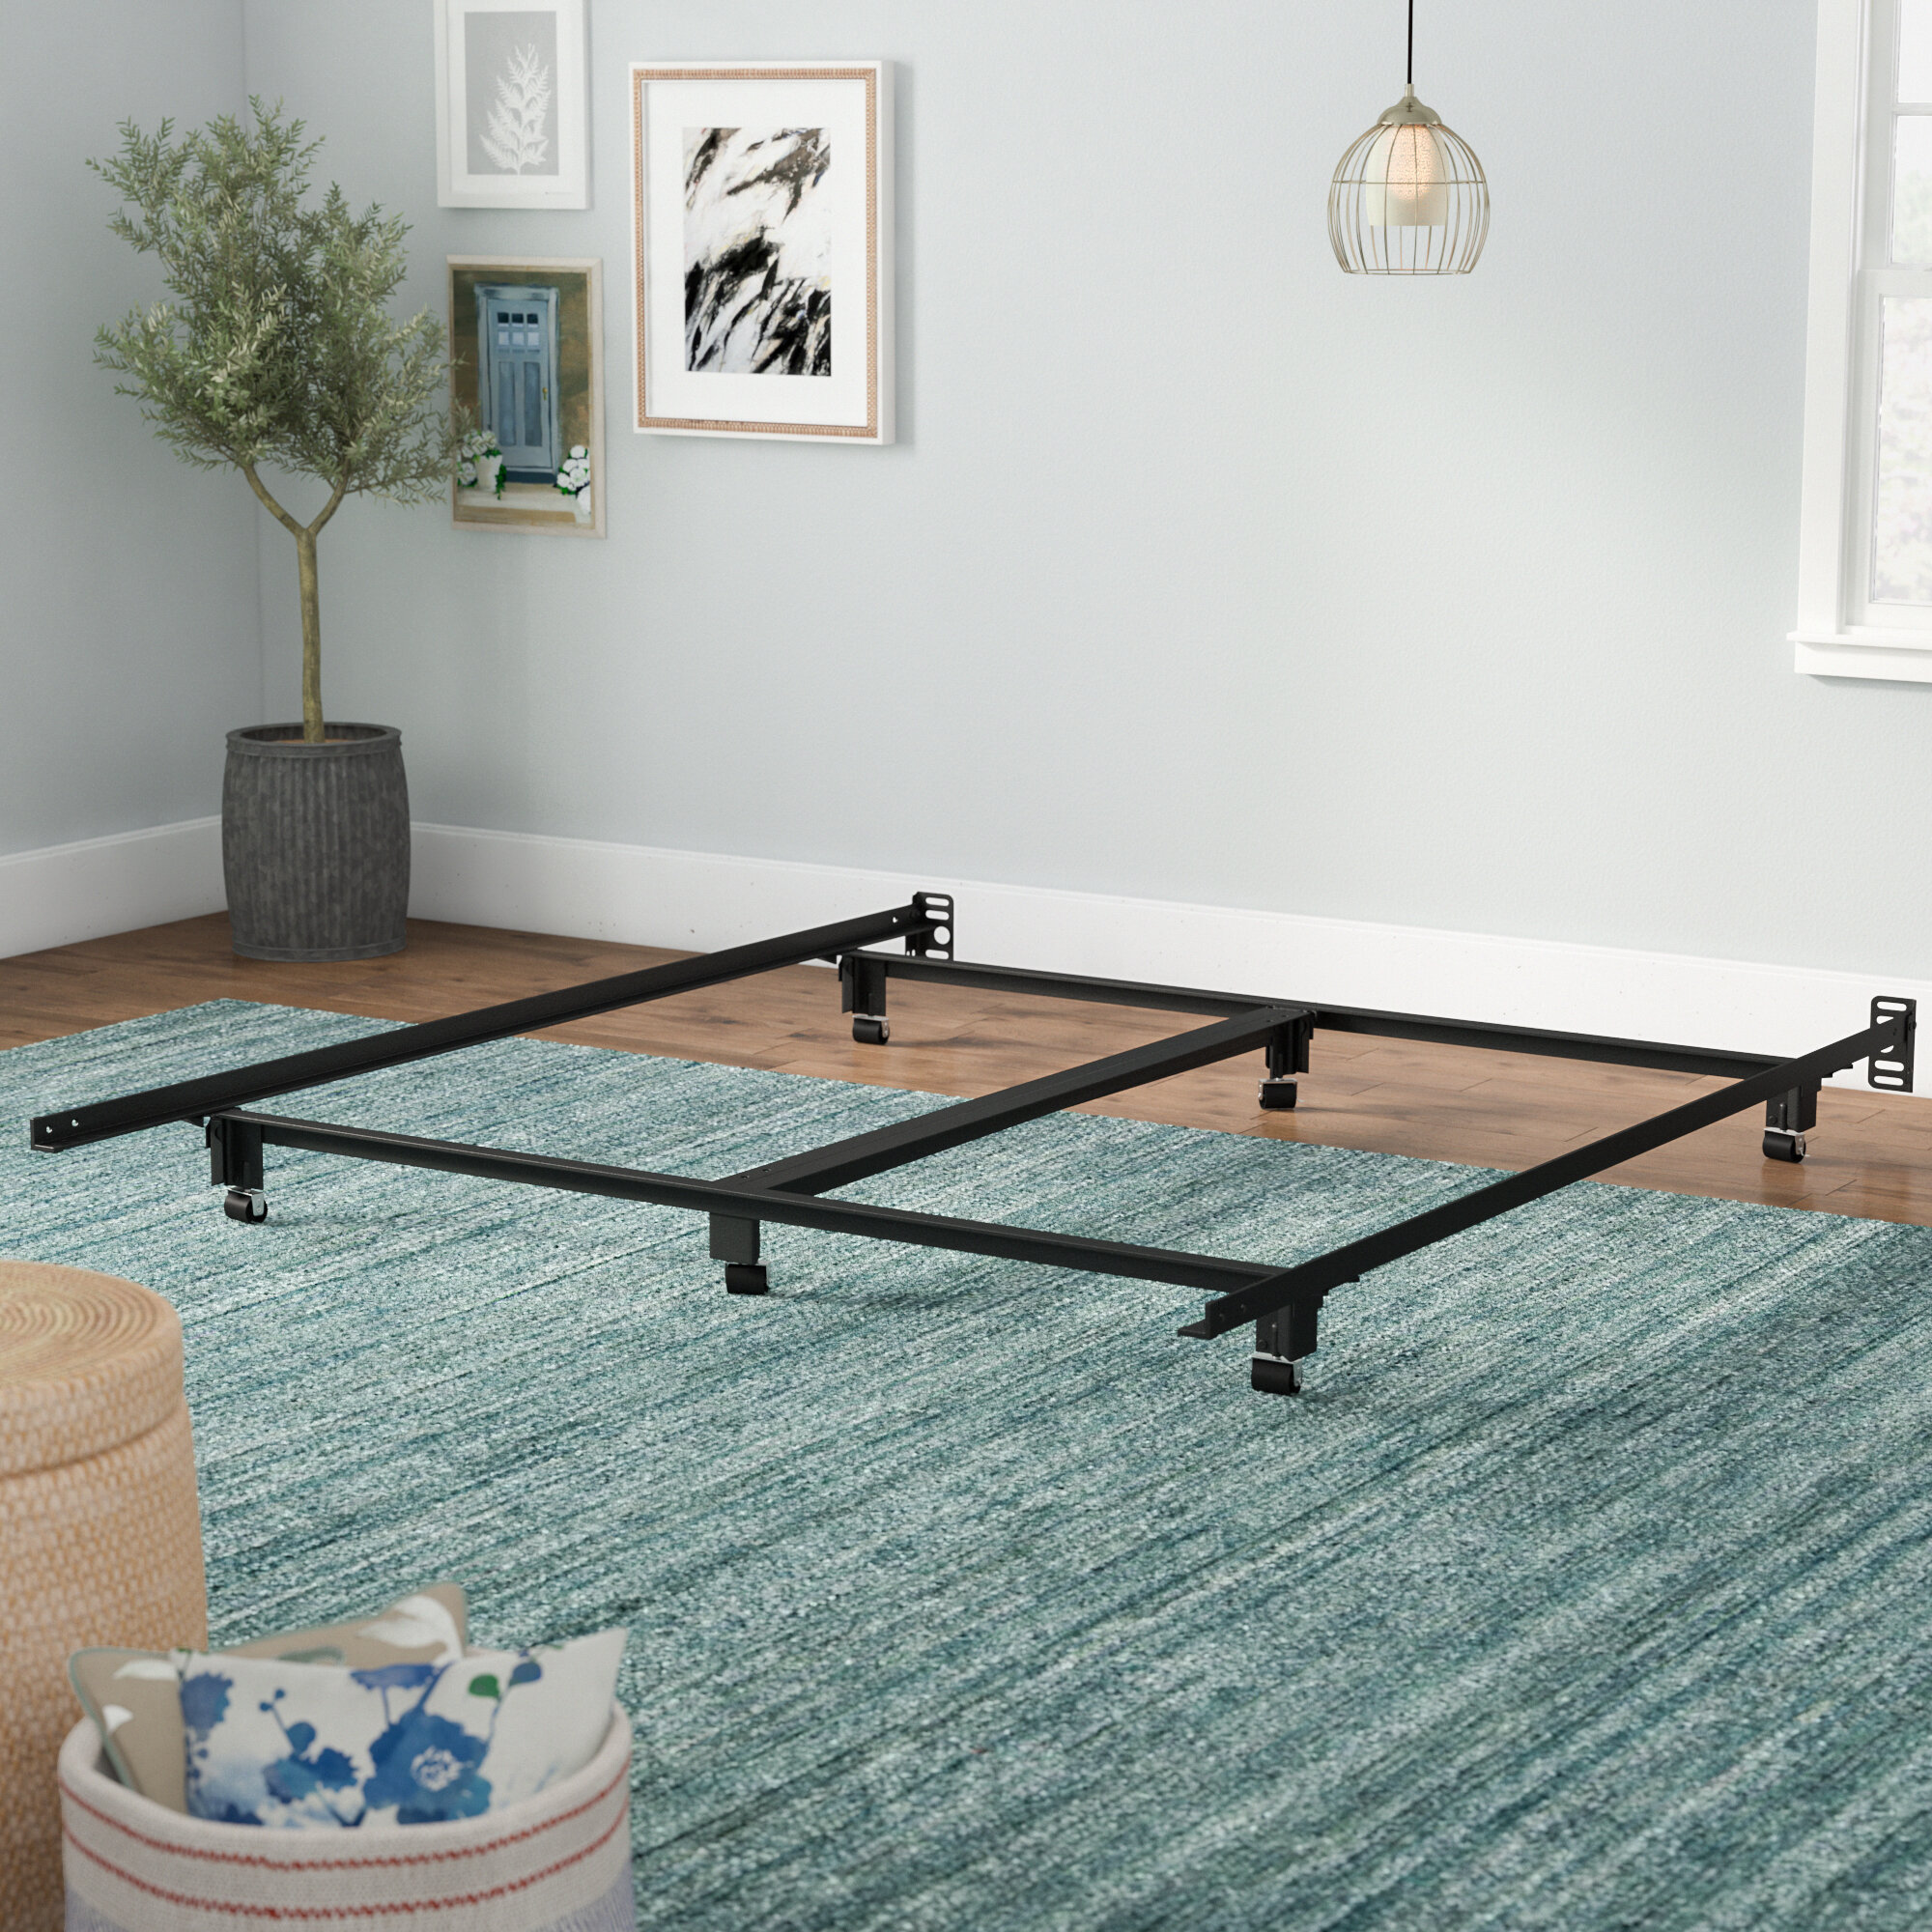 Symple Stuff Steelock Super Duty Bed Frame & Reviews | Wayfair